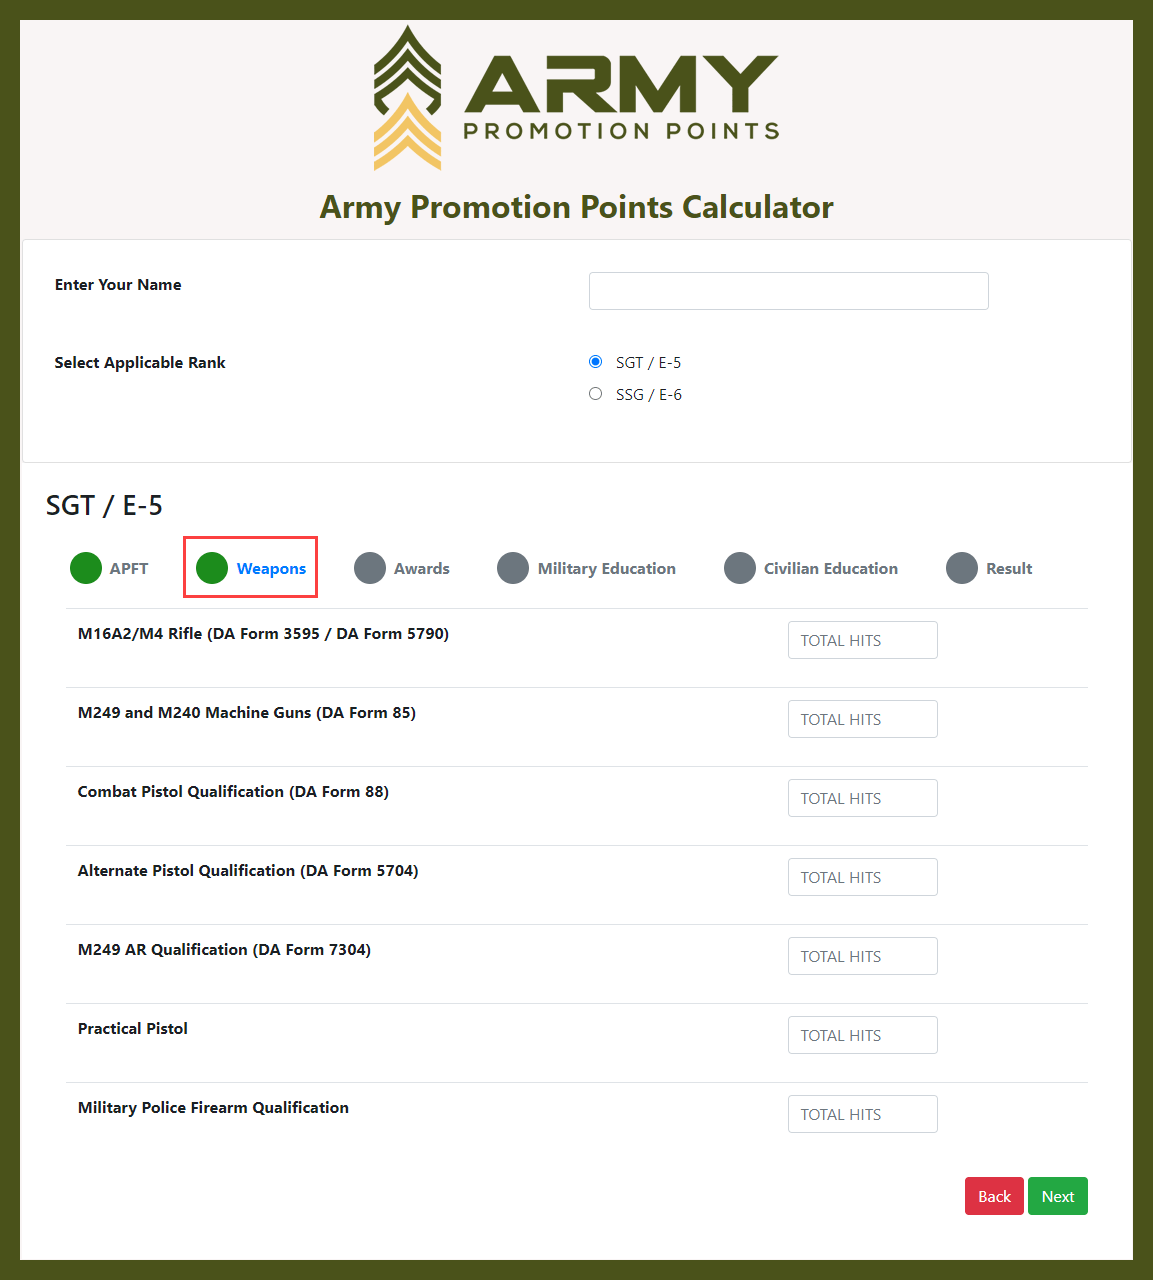 Army Promotion Points Calculator